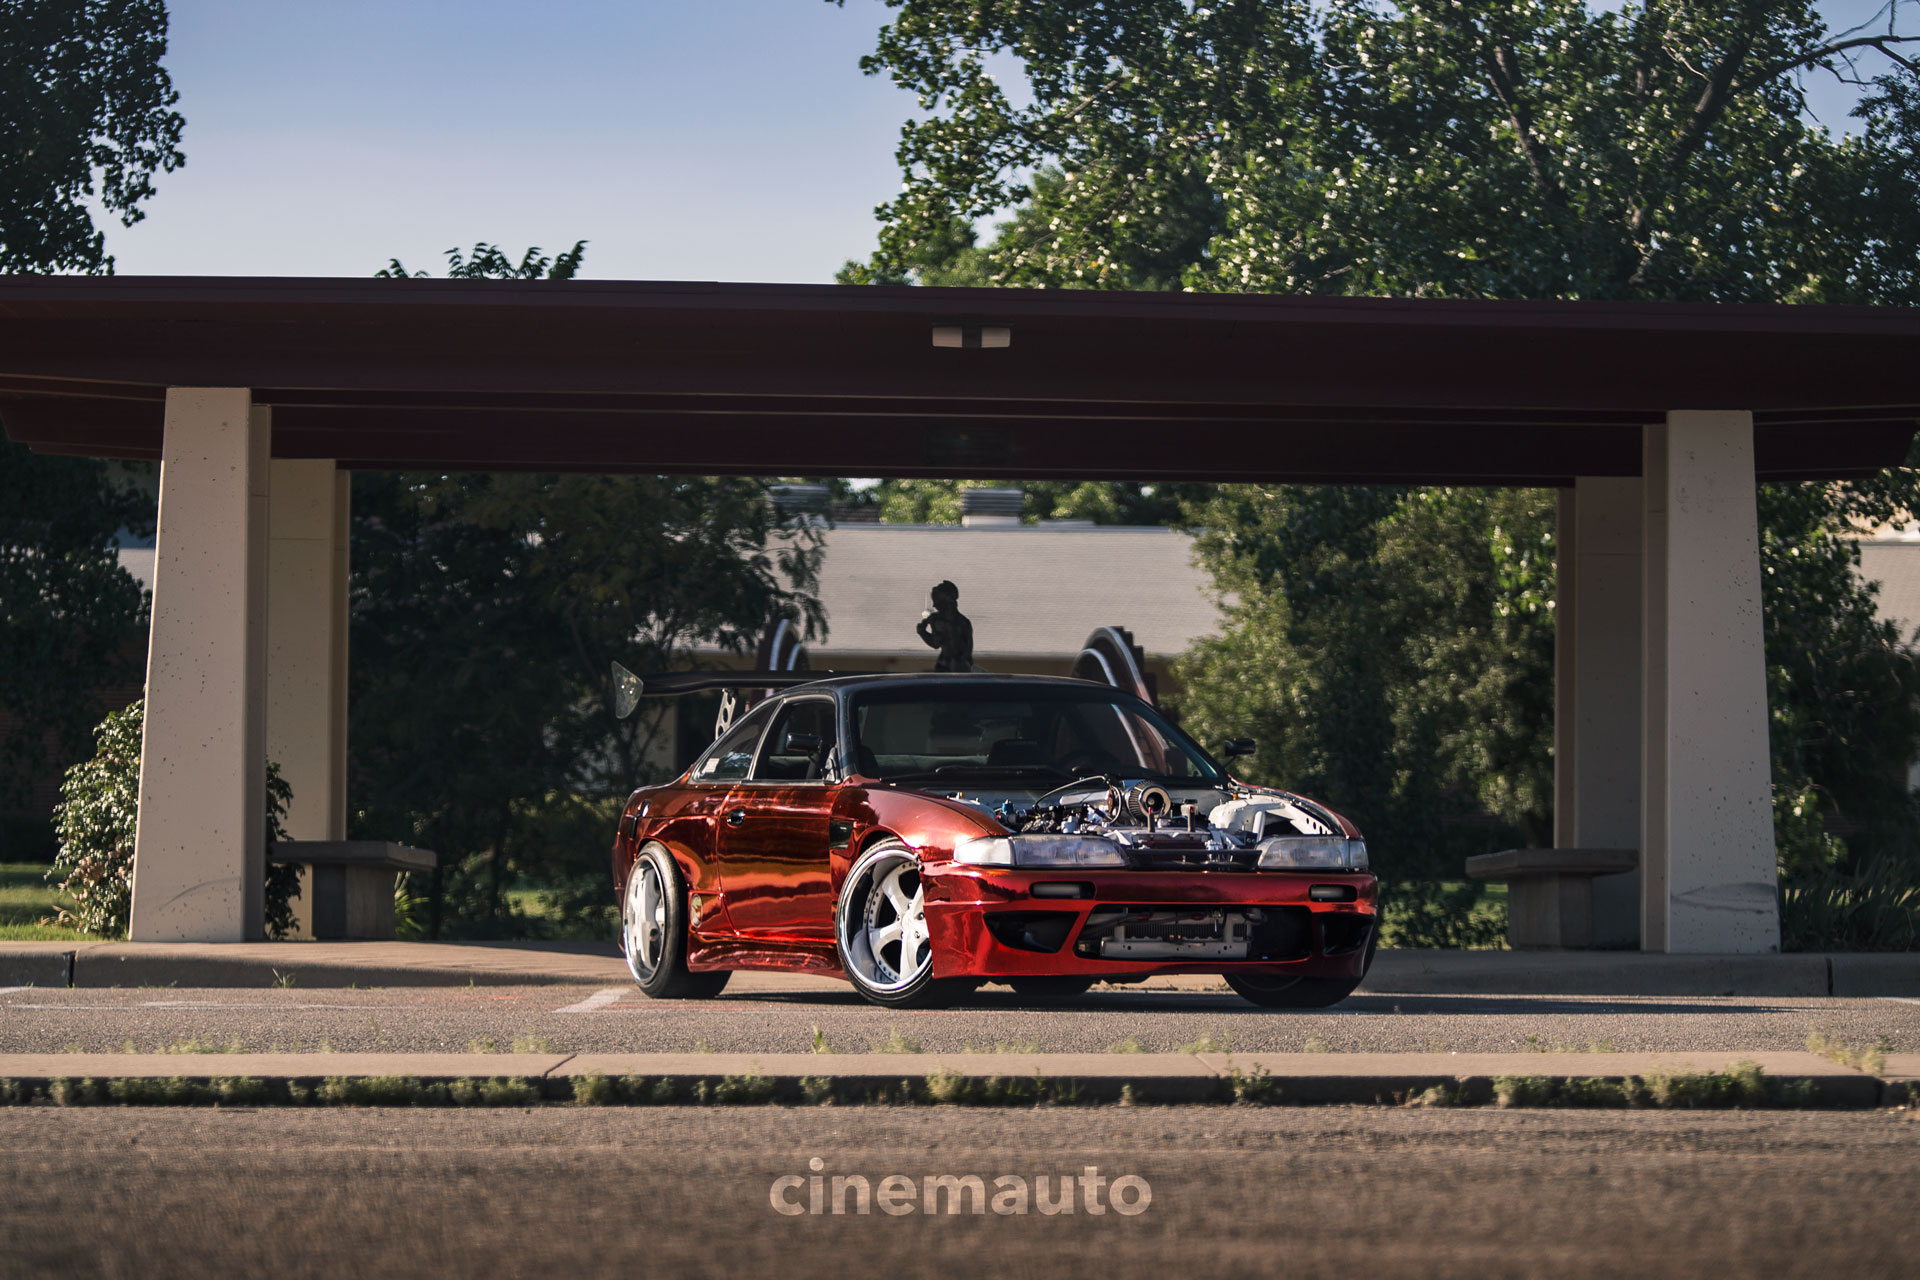 cinemauto-midwest-car-photography-jp1.jpg